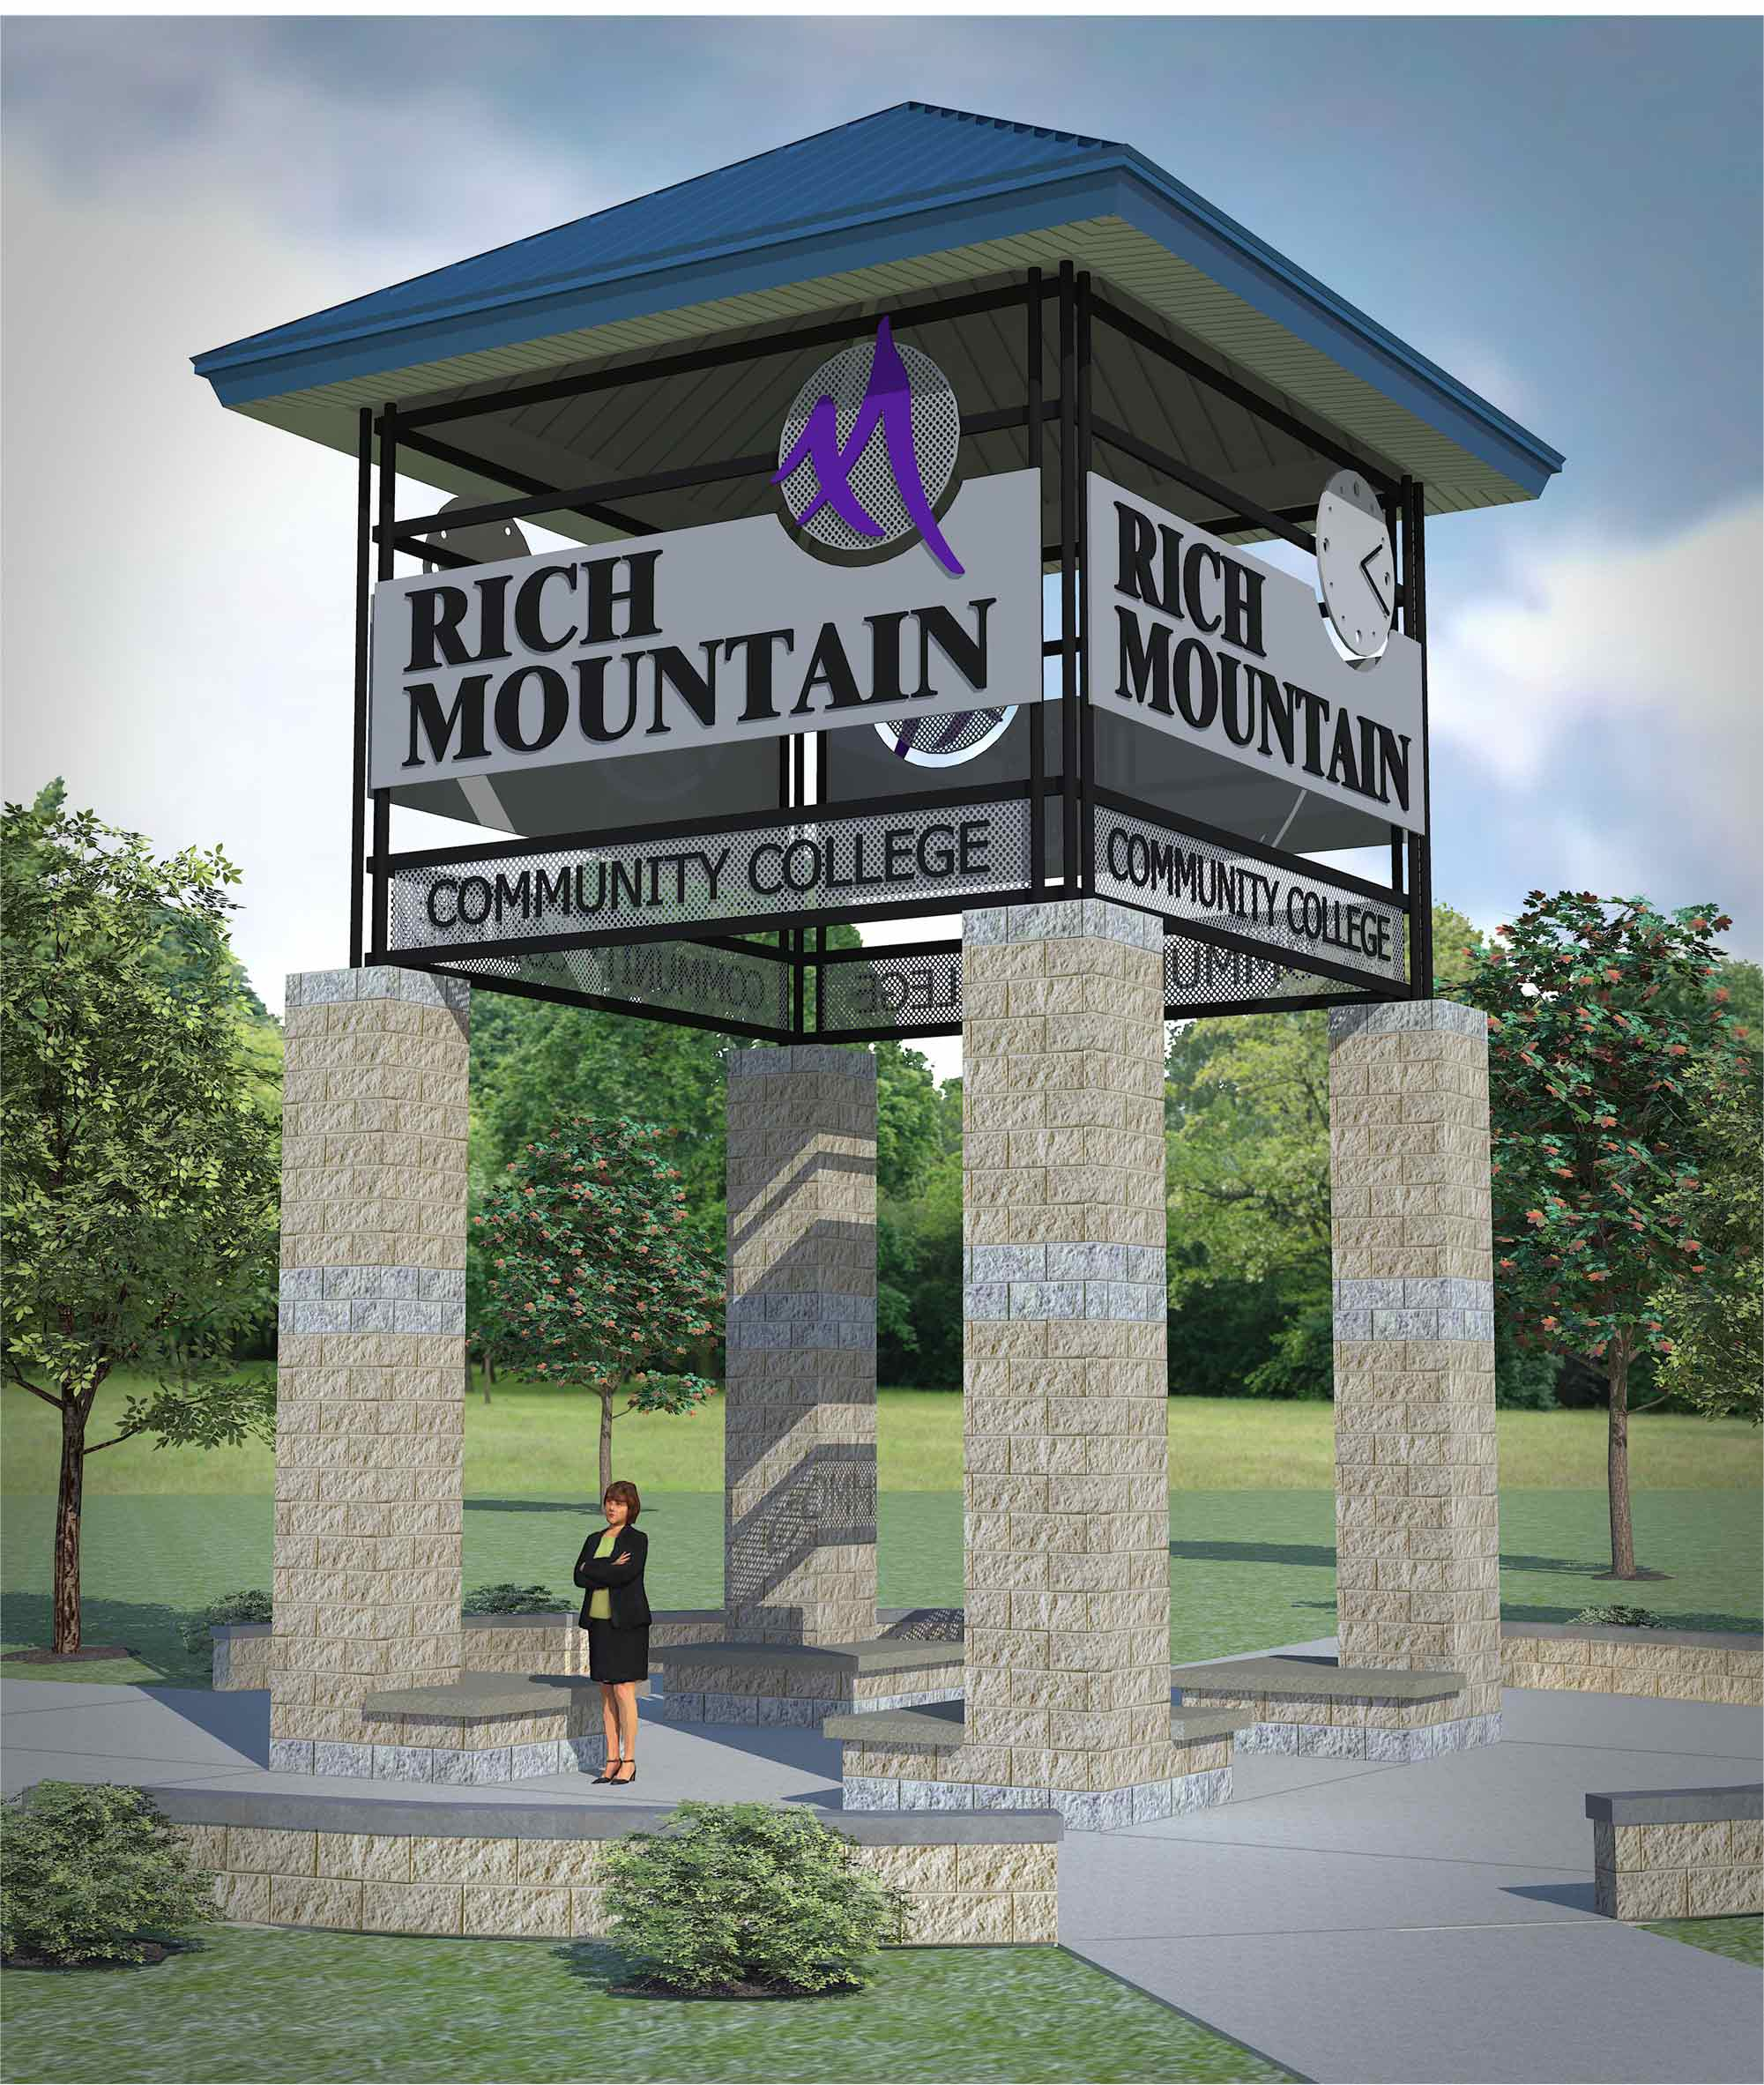 Serving as focal point between the Johnson Learning Commons and the new Ouachita Center, the clock tower will also receive an update with an updated logo and clocks.